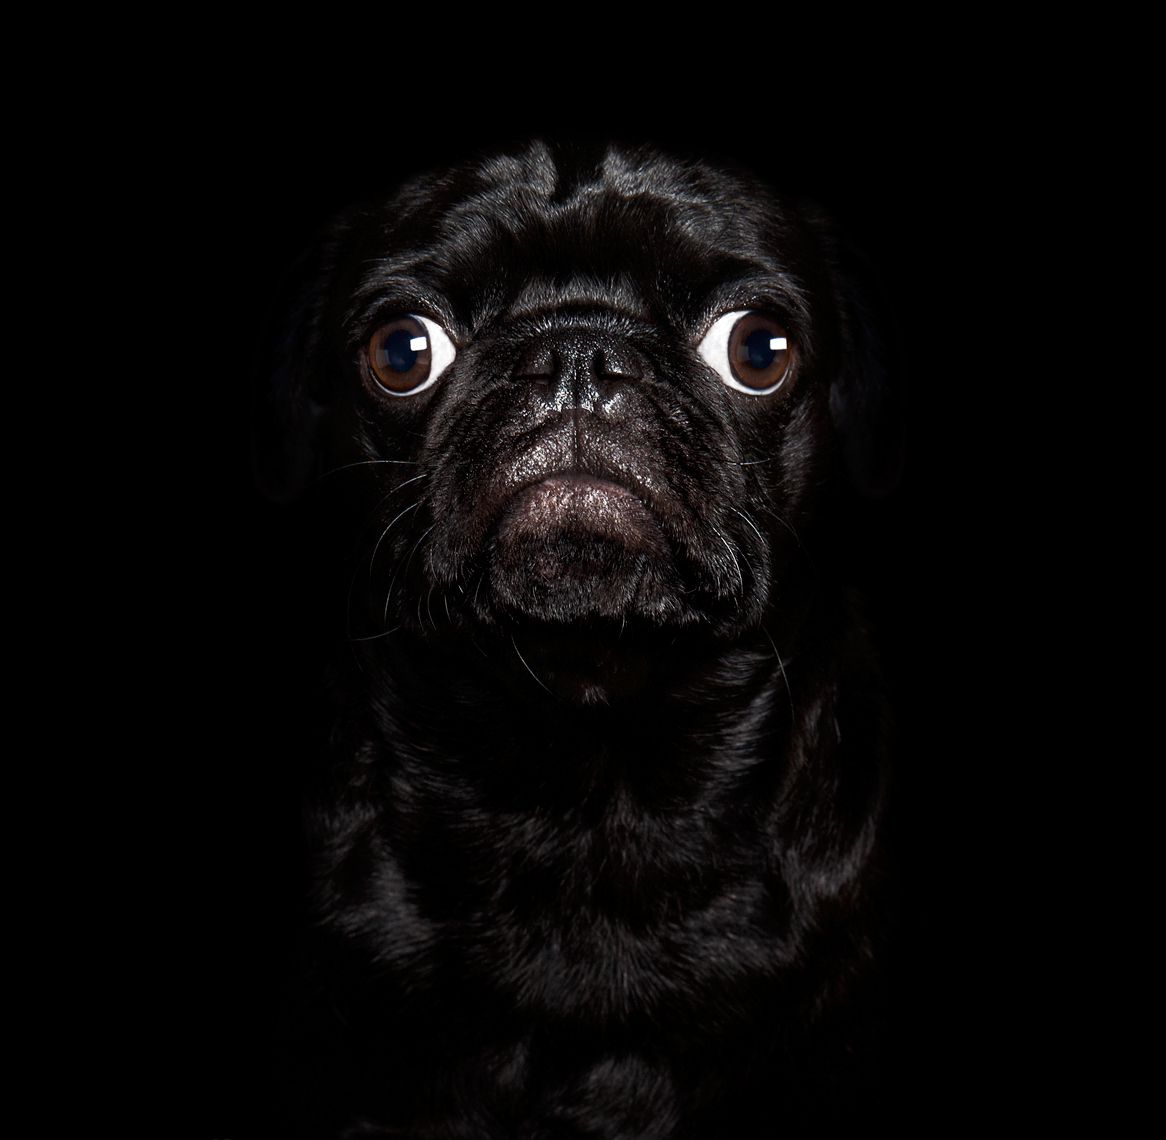 Black pug portrait